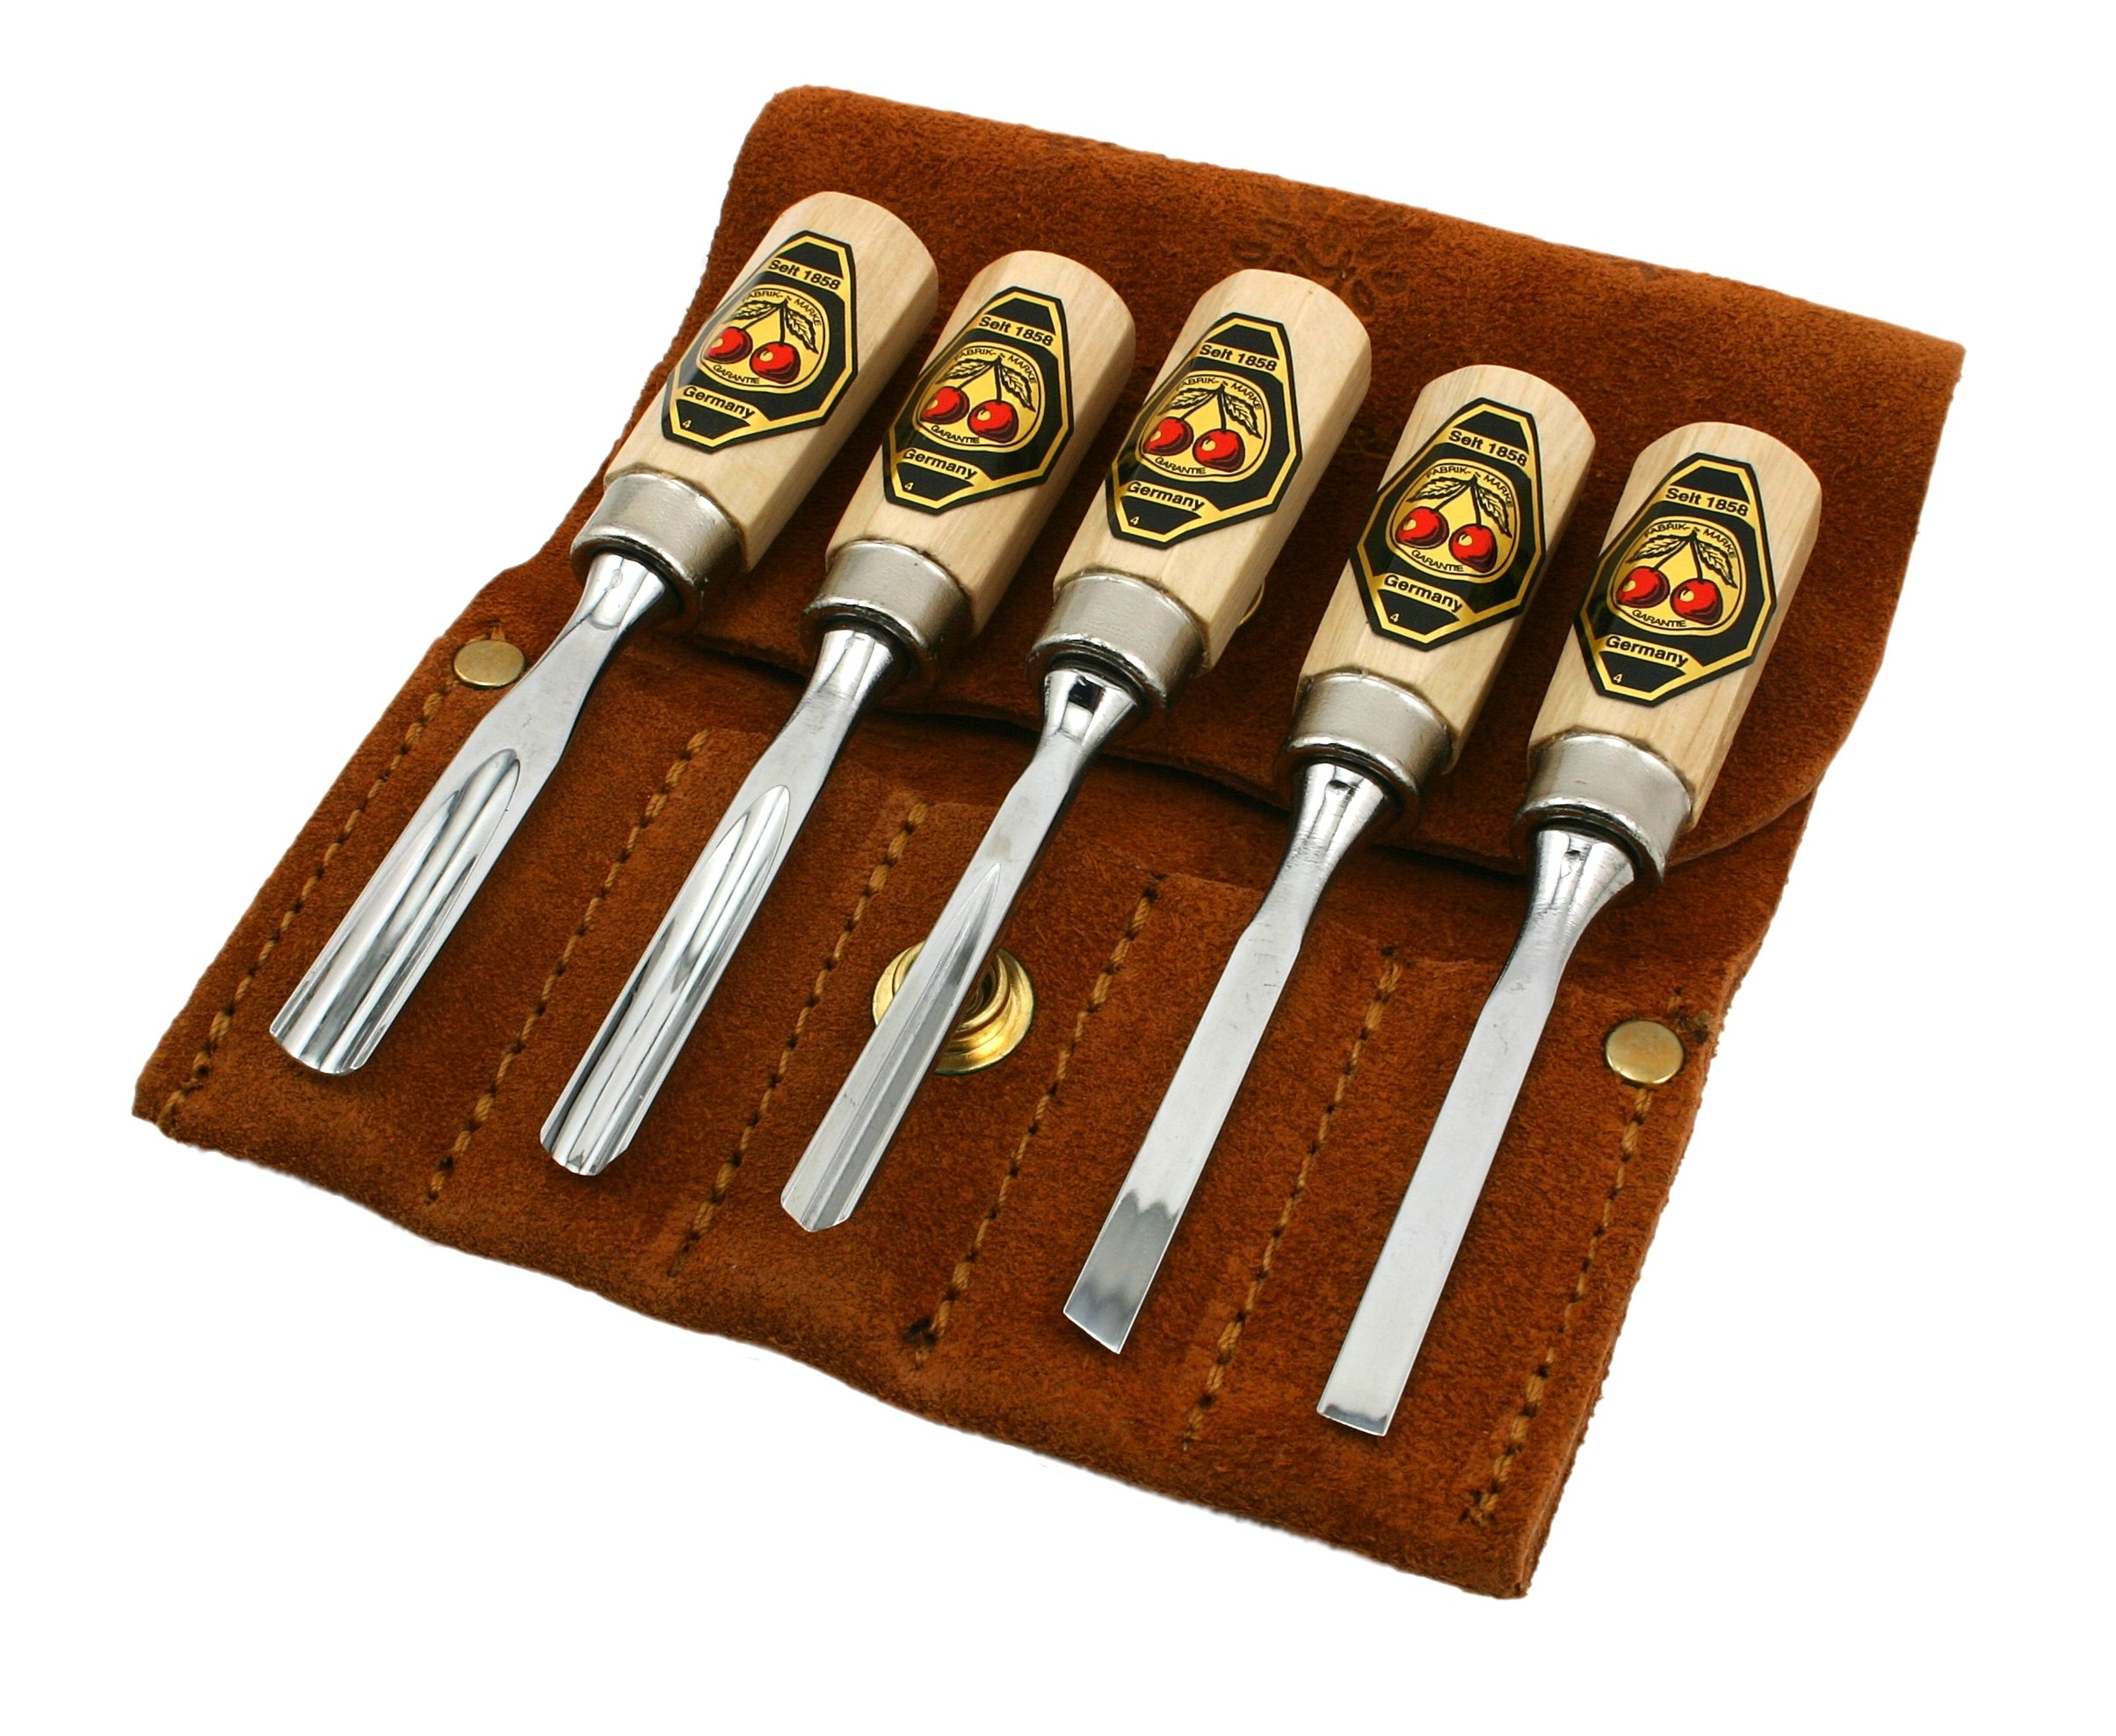 Two Cherries 515-8575 5-Piece Small Wood Carving Tool Set with Leather Pouch